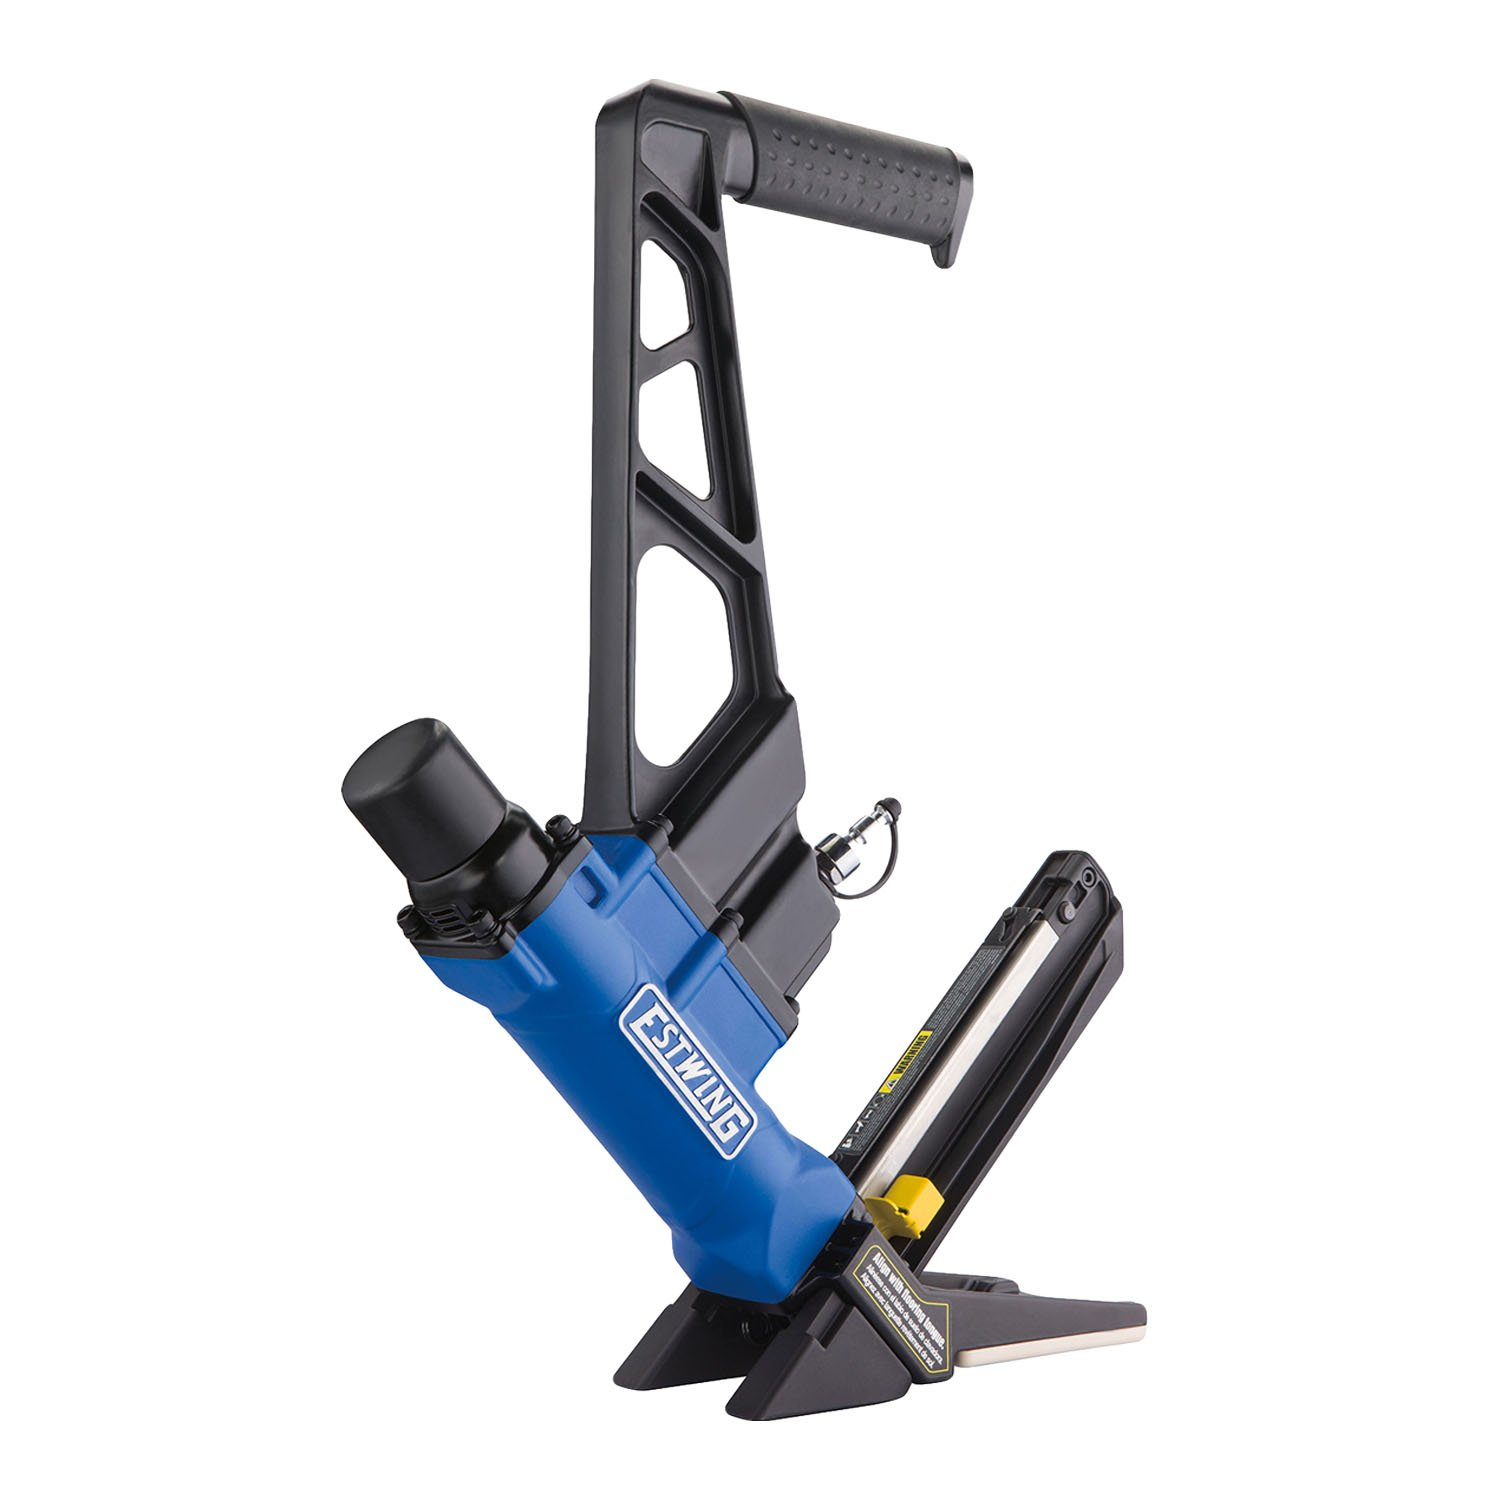 Estwing EFL50Q 2-in-1 Pneumatic Flooring Nailer and Stapler Ergonomic & Lightweight Pneumatic Nail Gun for Hardwood Flooring with Interchangeable Base Plates, No-Mar Feet & Mallet